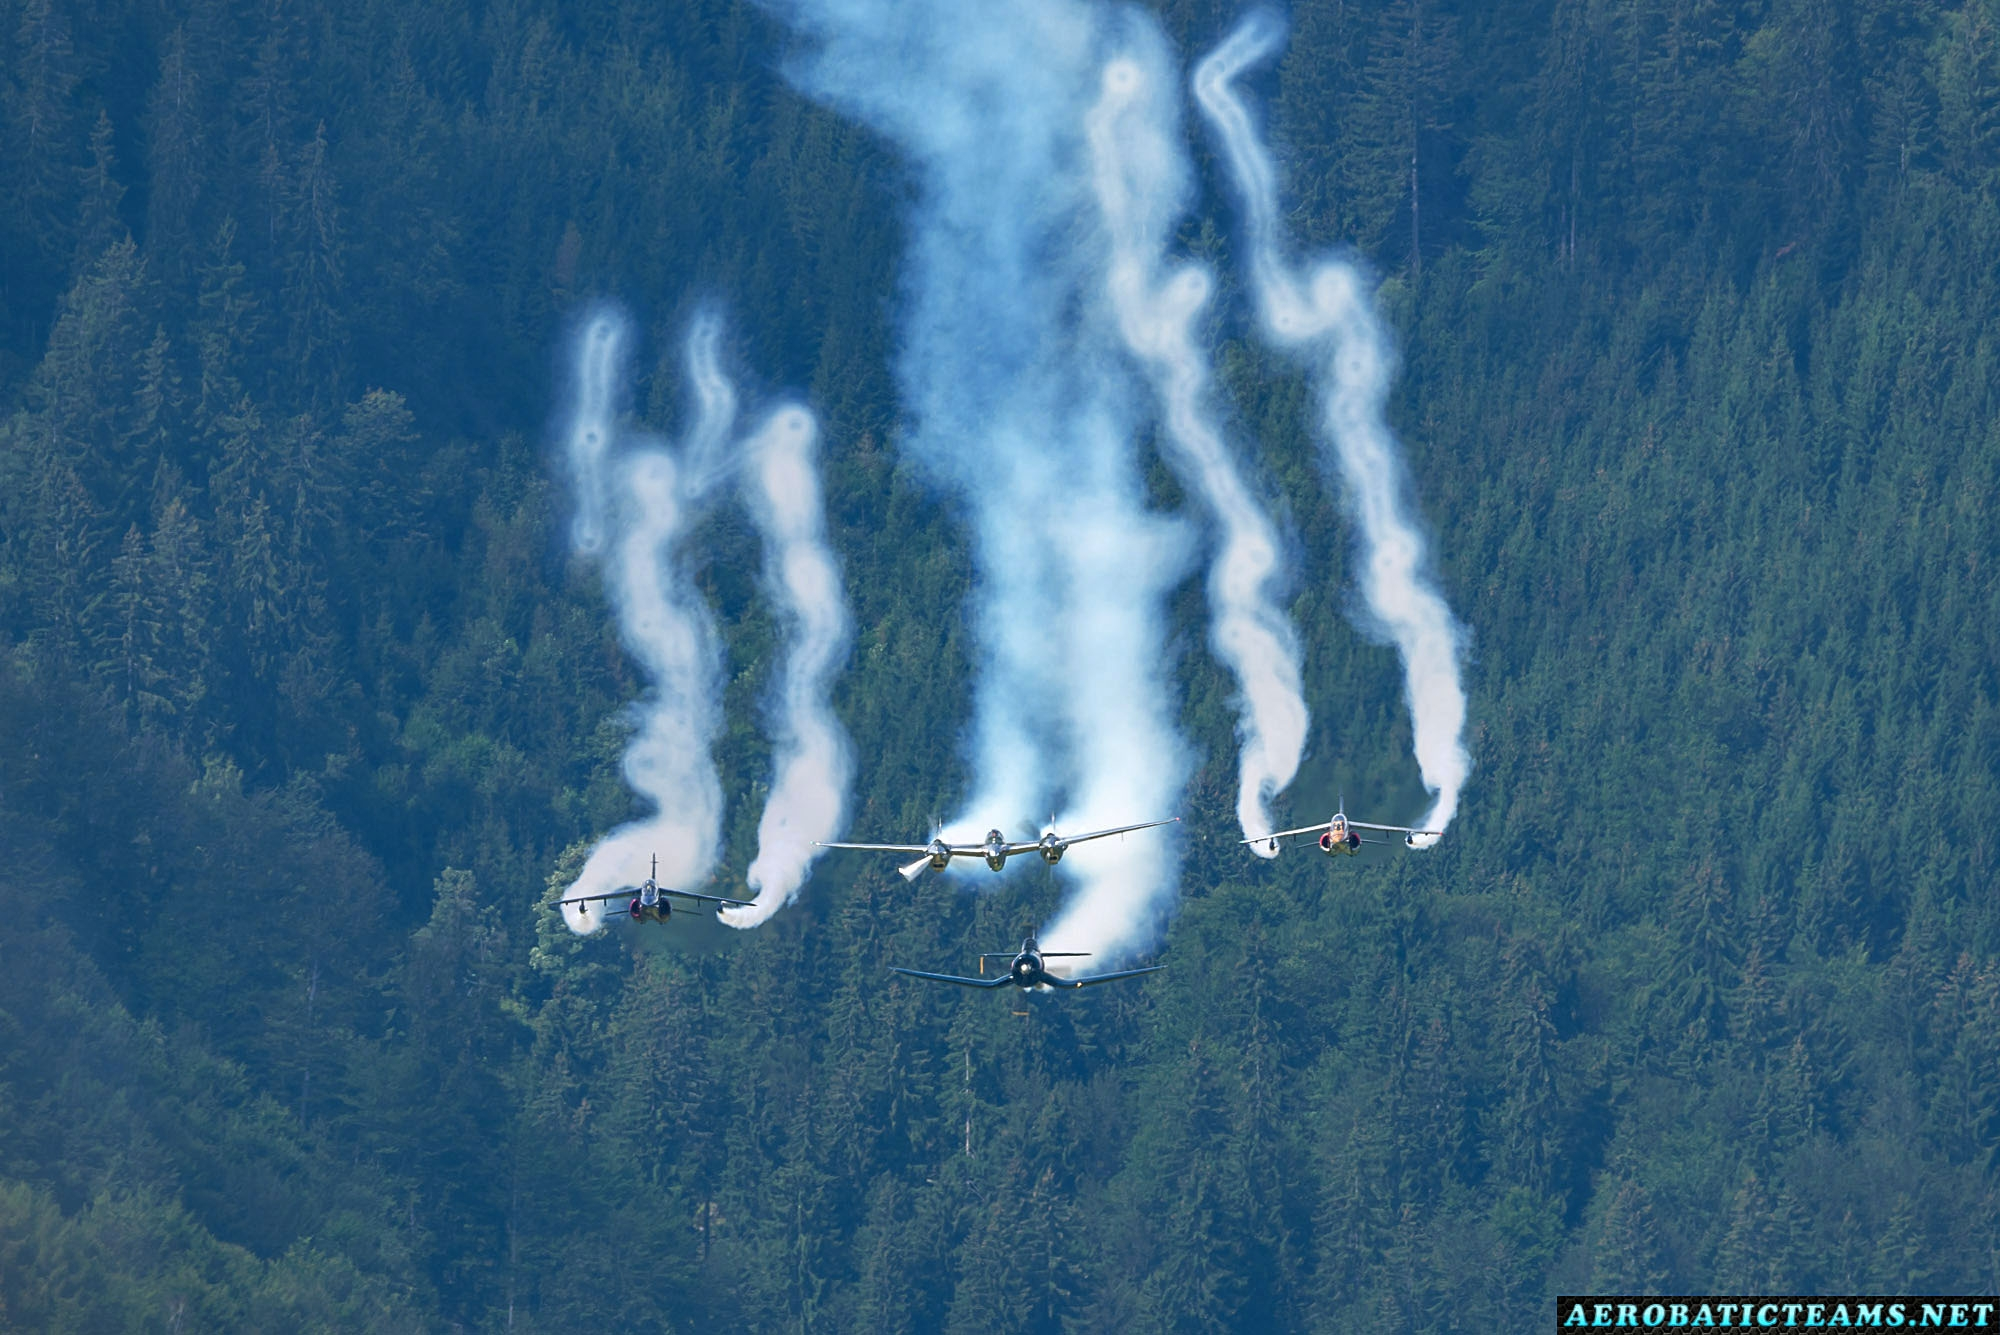 Red Bull formation - P-38 Lightning, F4U-4 Corsair and Alpha Jets